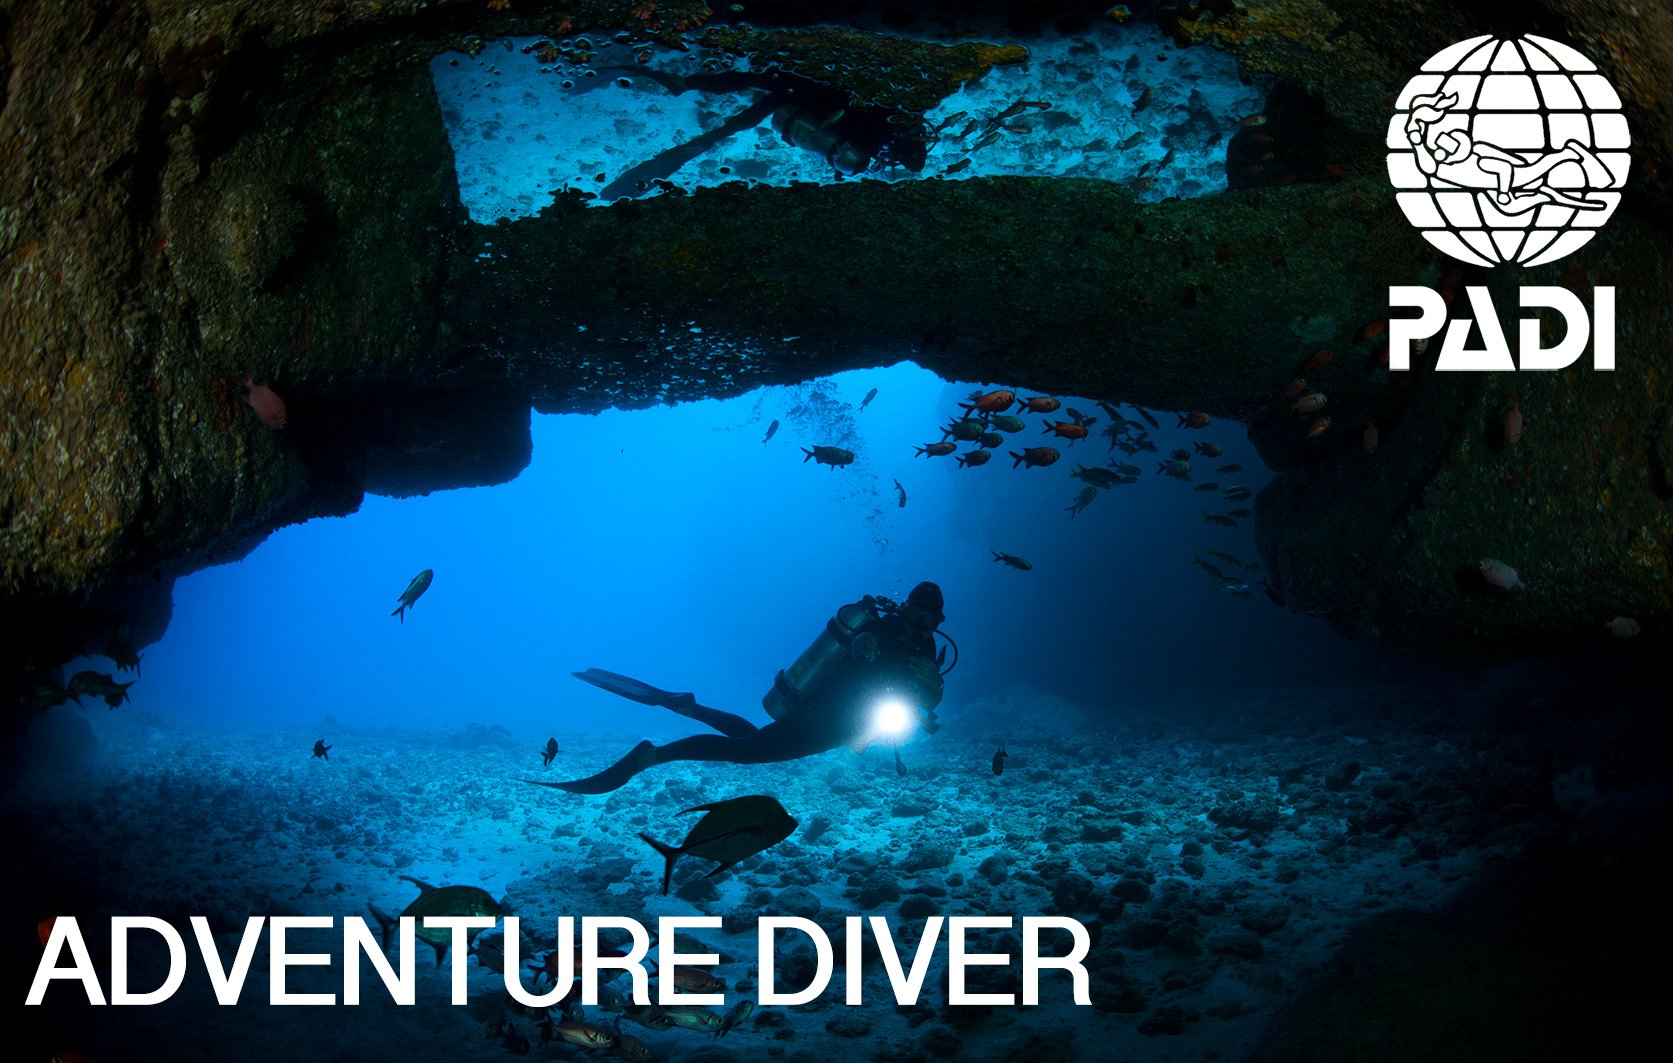 PADI adventure diver course in Mauritius